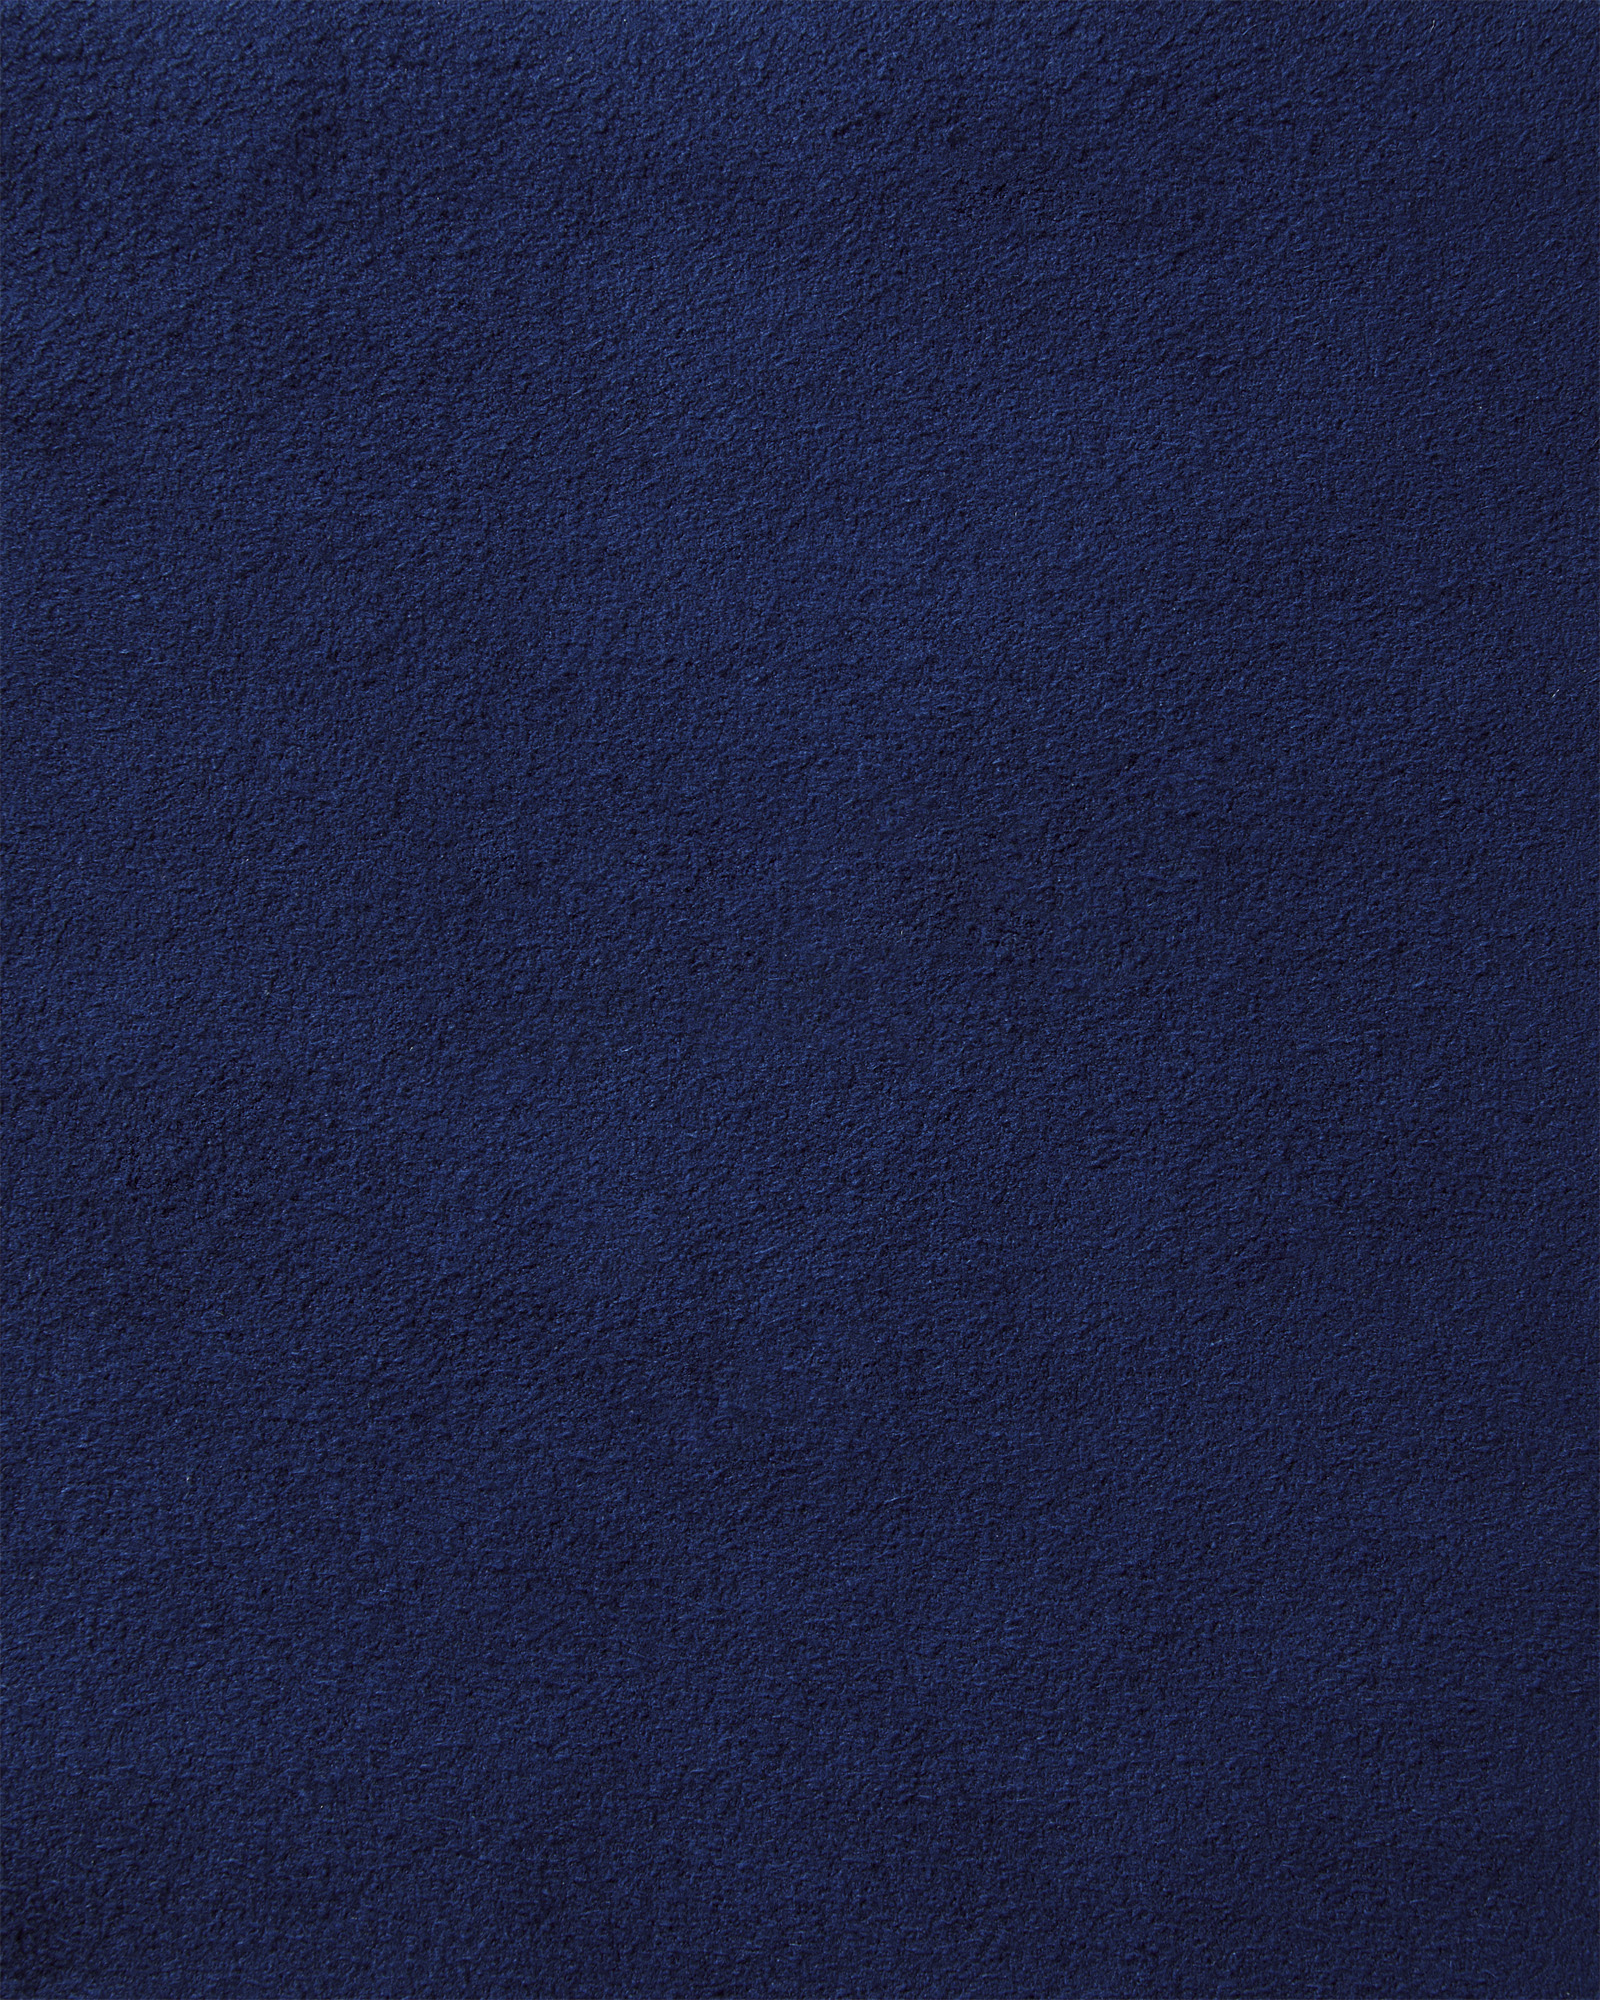 Fabric by the Yard - Performance Suede, Cobalt